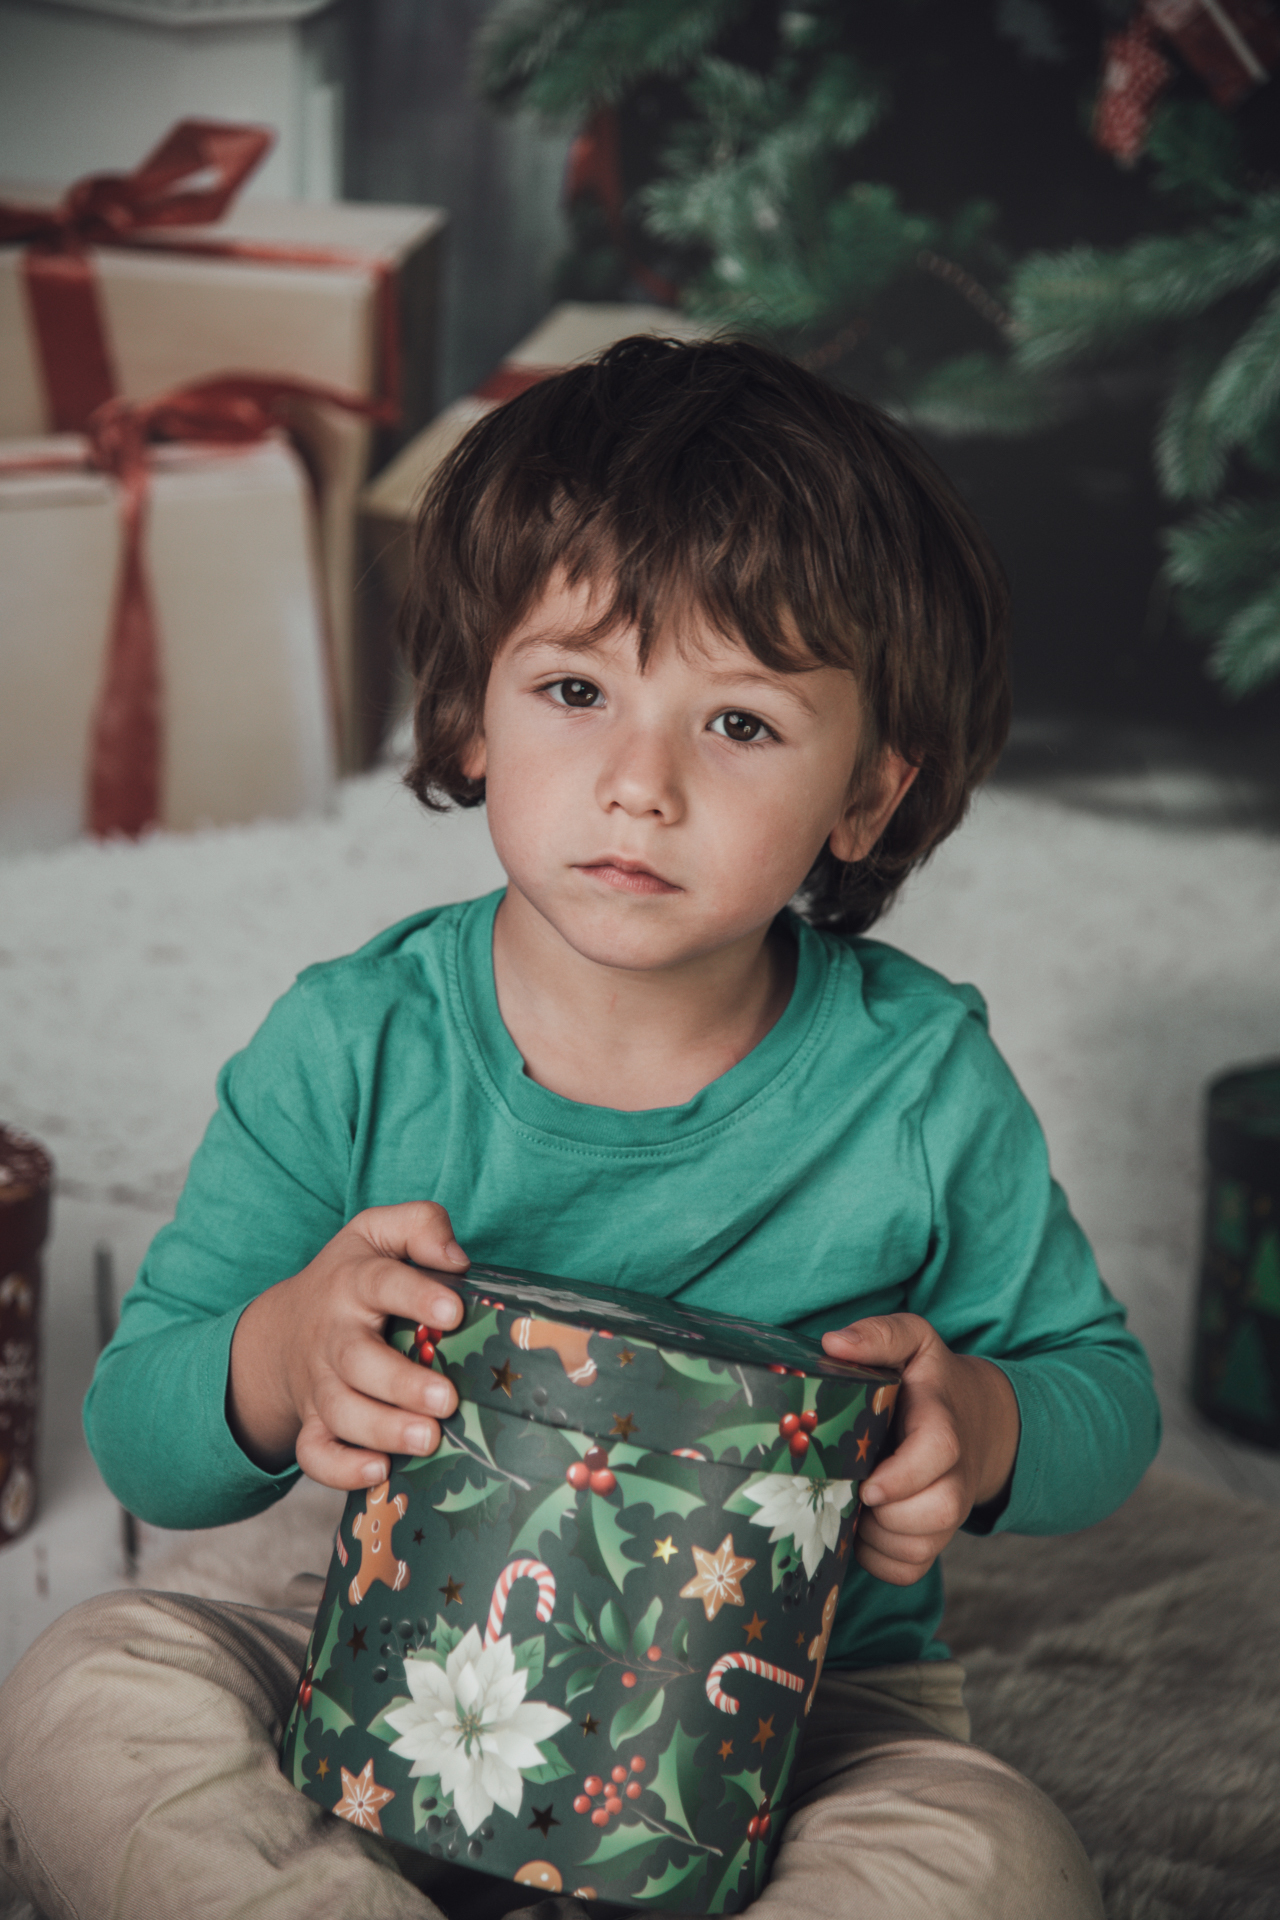 Weihnachtsminis_Vincent21_new_web-46